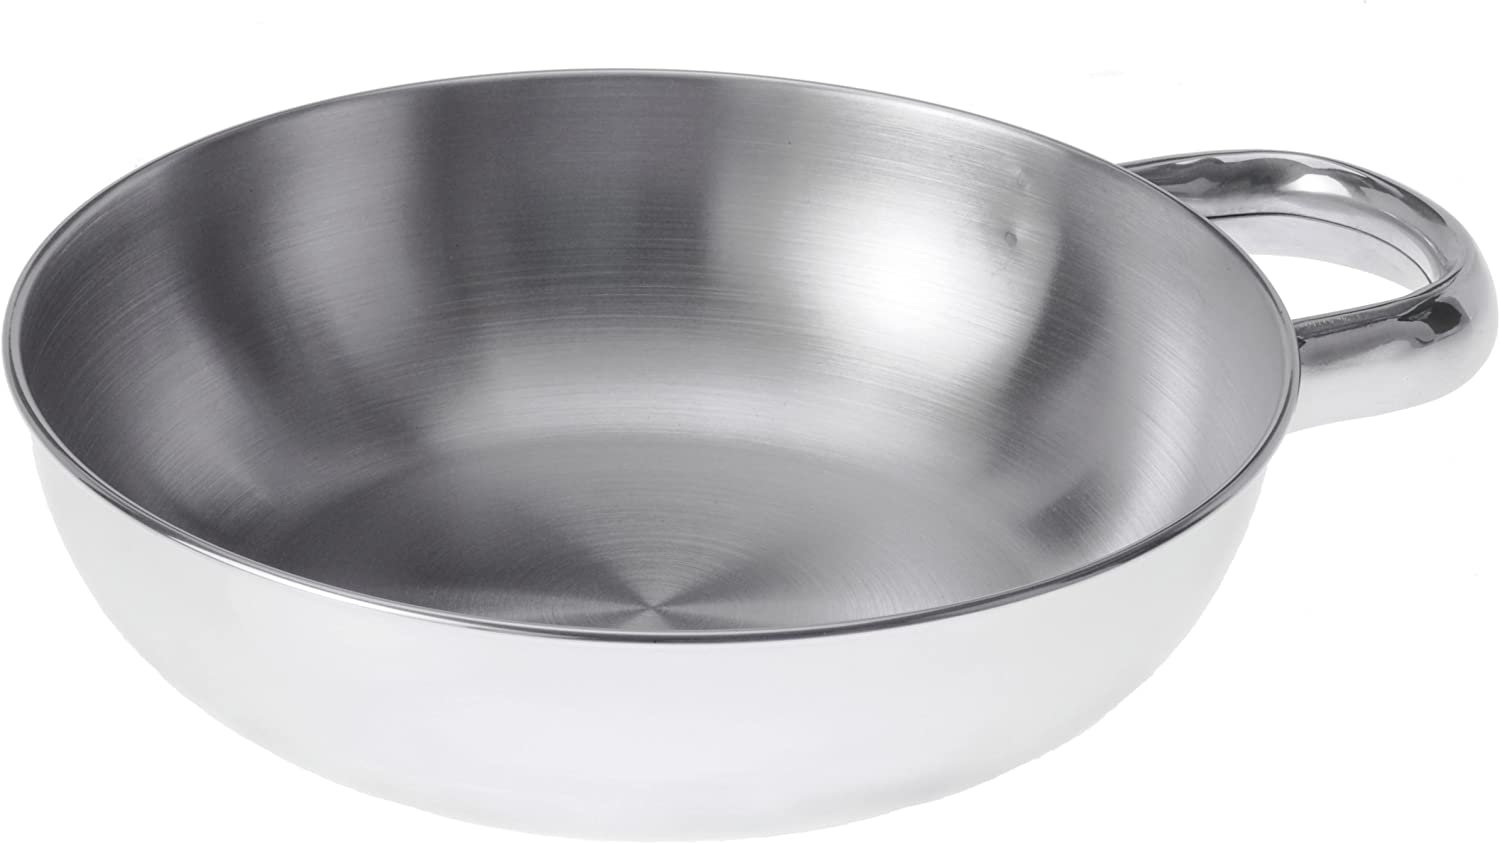 Tulsa Mall GSI Outdoors Glacier Max 46% OFF Stainless Bowl Handle for Camping with Bru